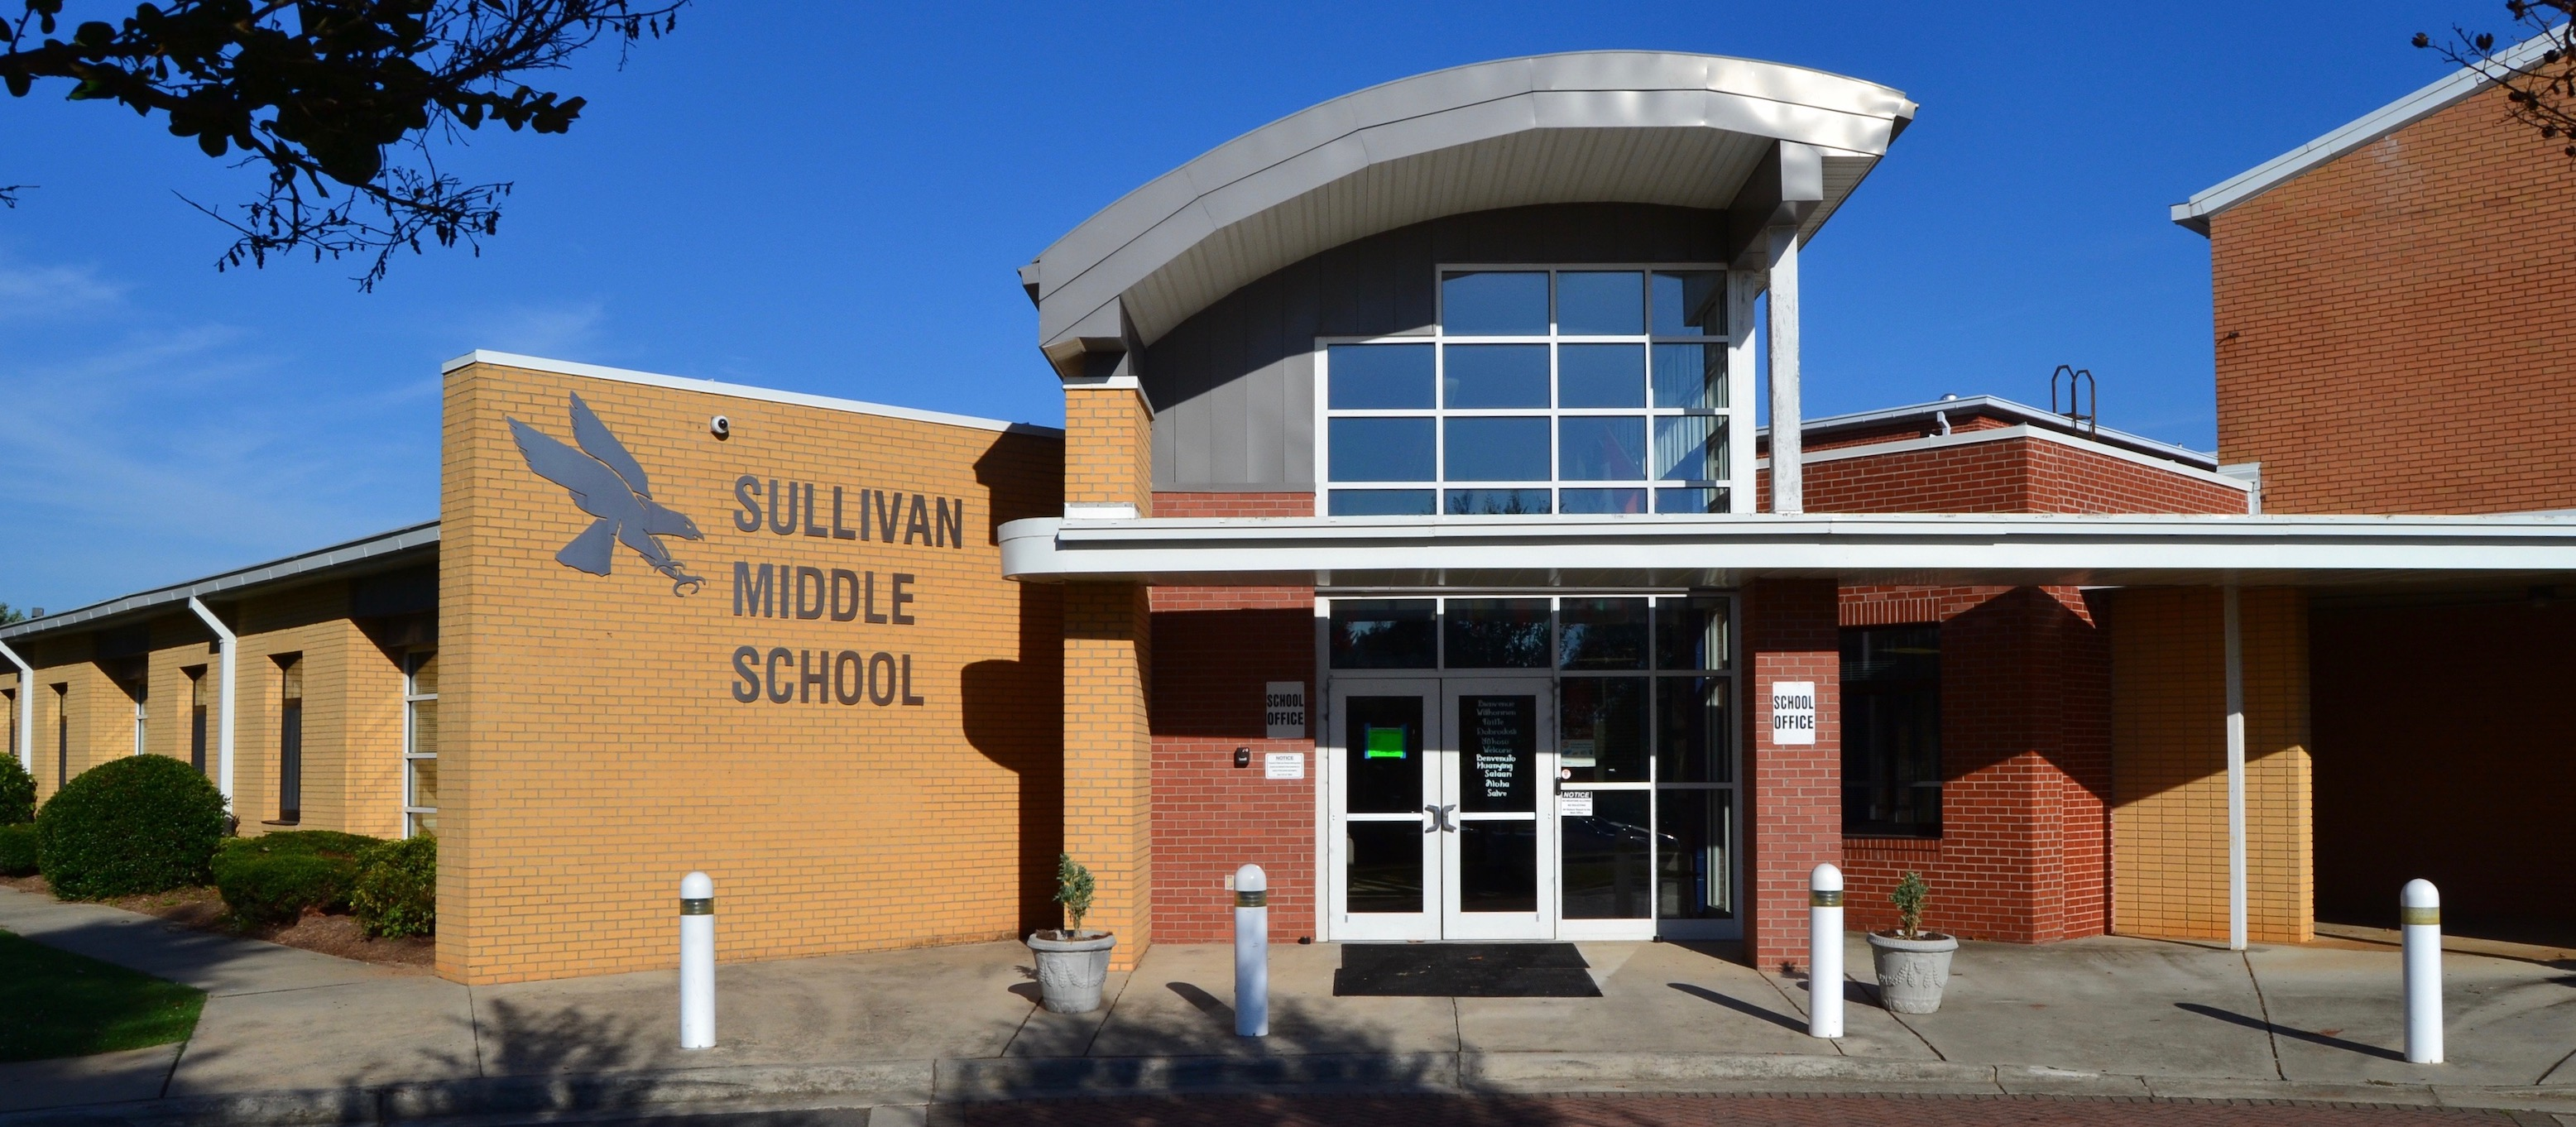 Sullivan Middle School / Homepage